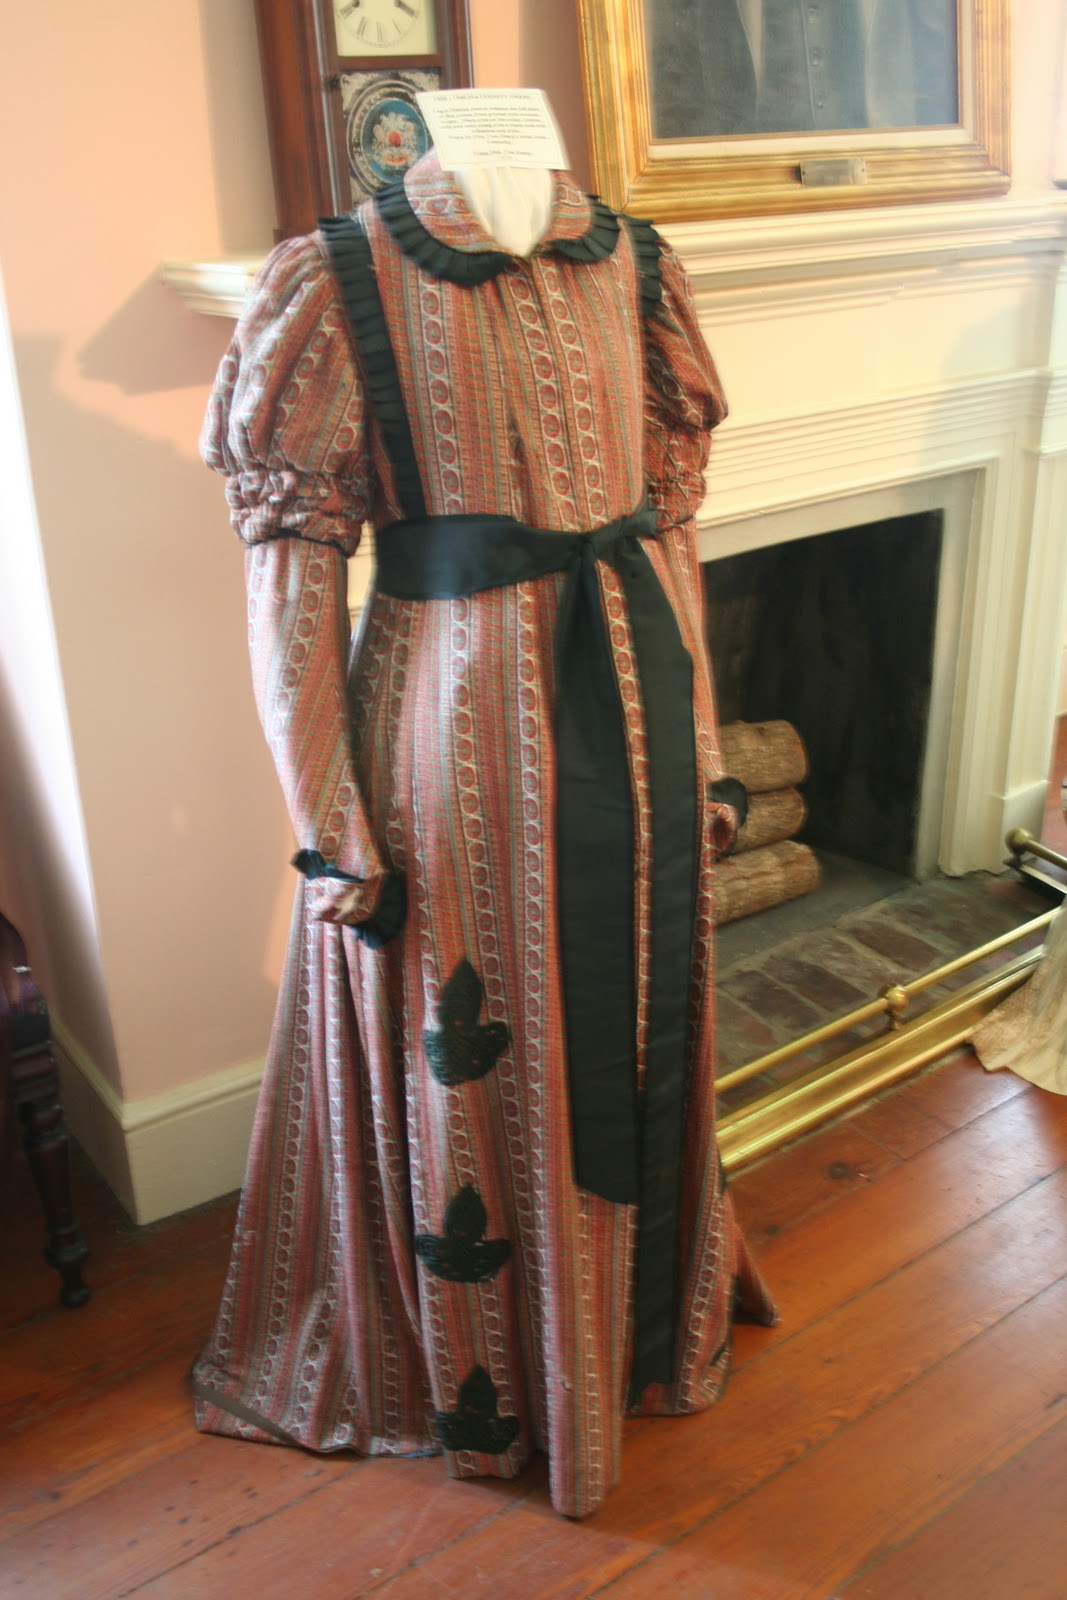 Historical Maternity Wear | Maggie May Clothing: The Finest in ...